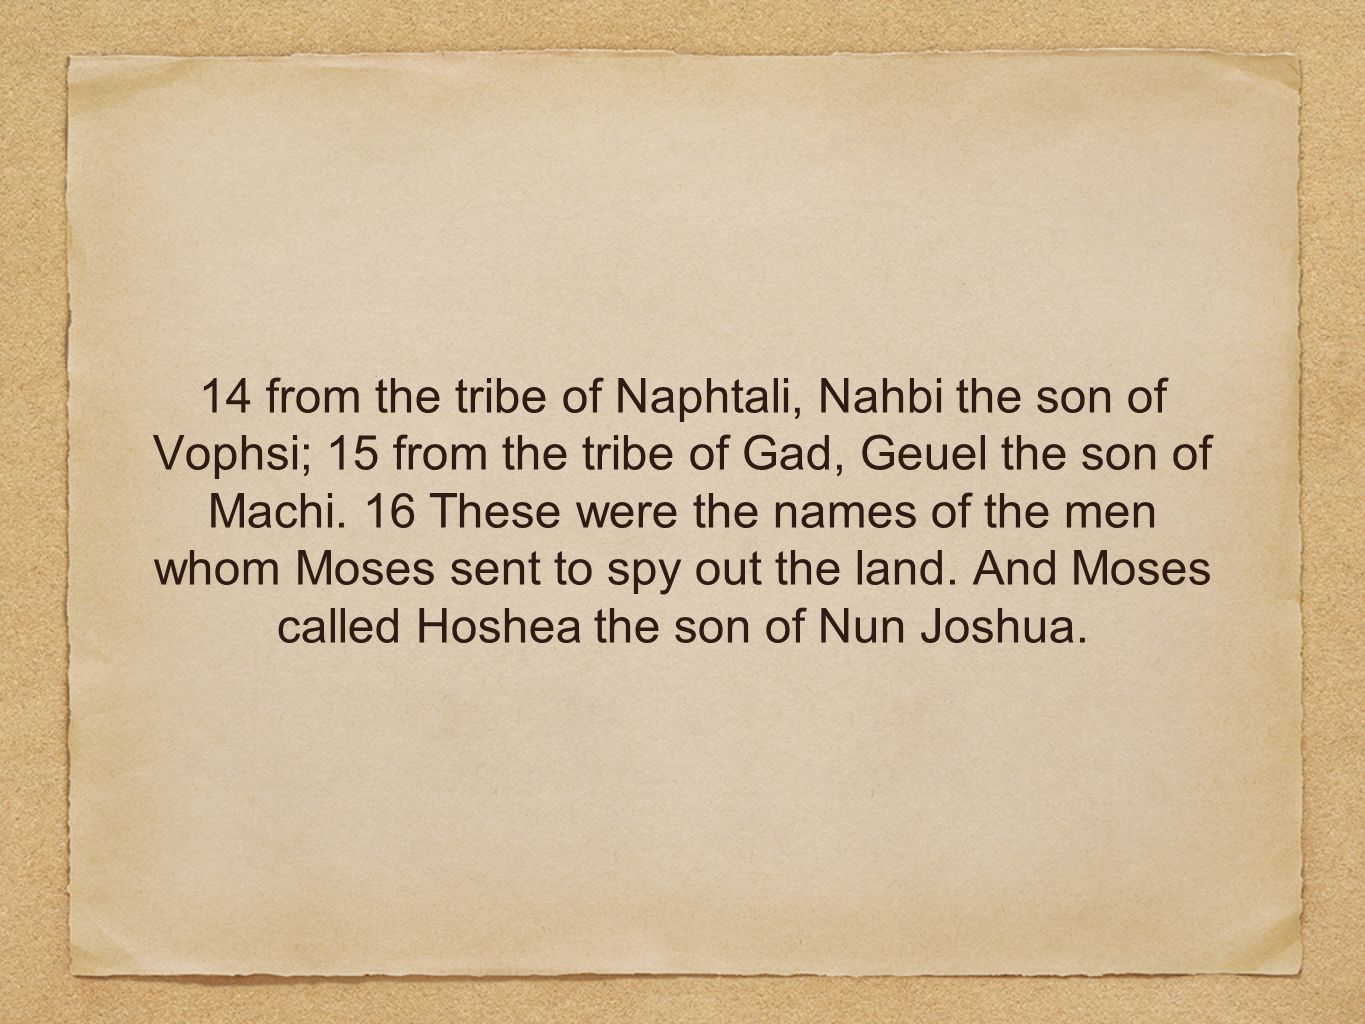 14 from the tribe of Naphtali, Nahbi the son of Vophsi; 15 from the tribe of Gad, Geuel the son of Machi.